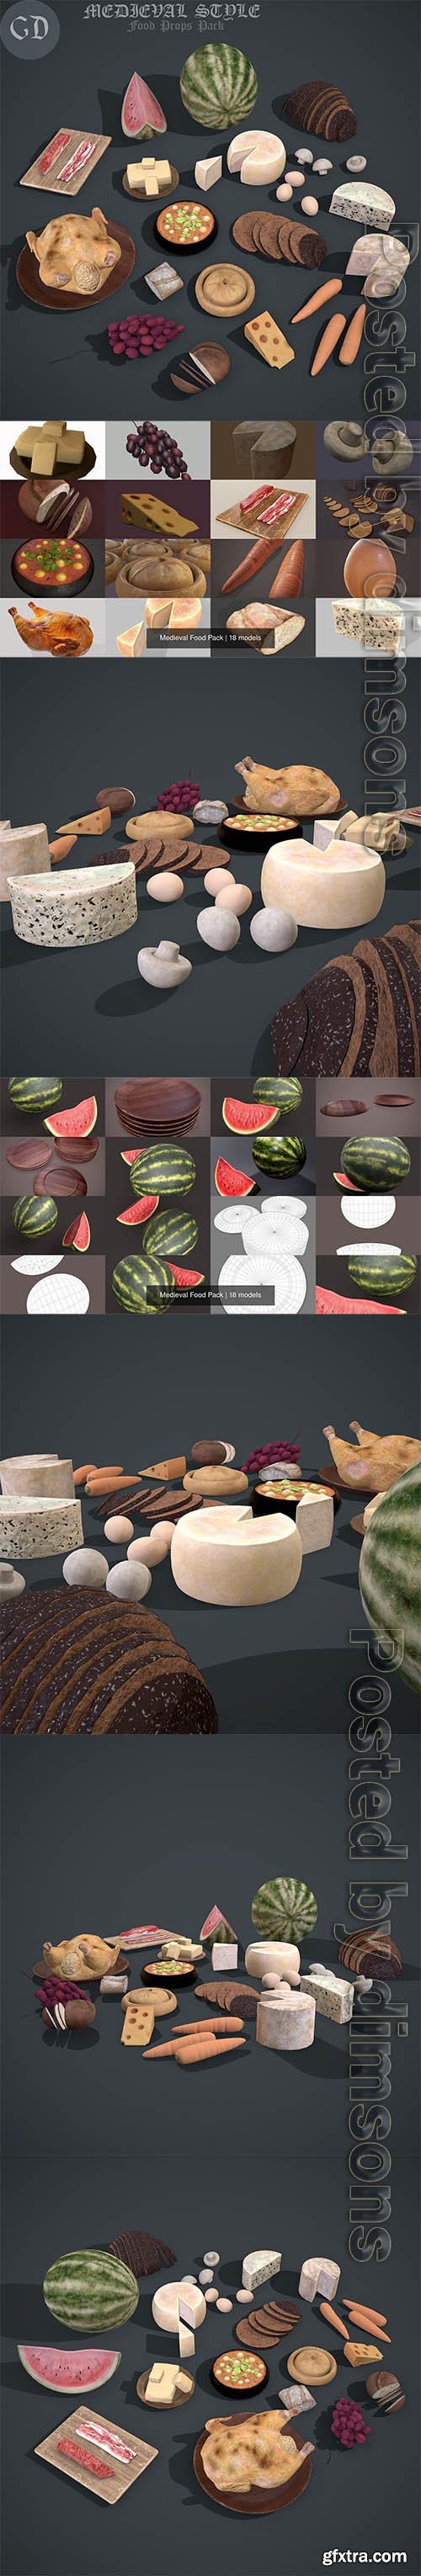 Cgtrader - Medieval Food Pack 3D Model Collection